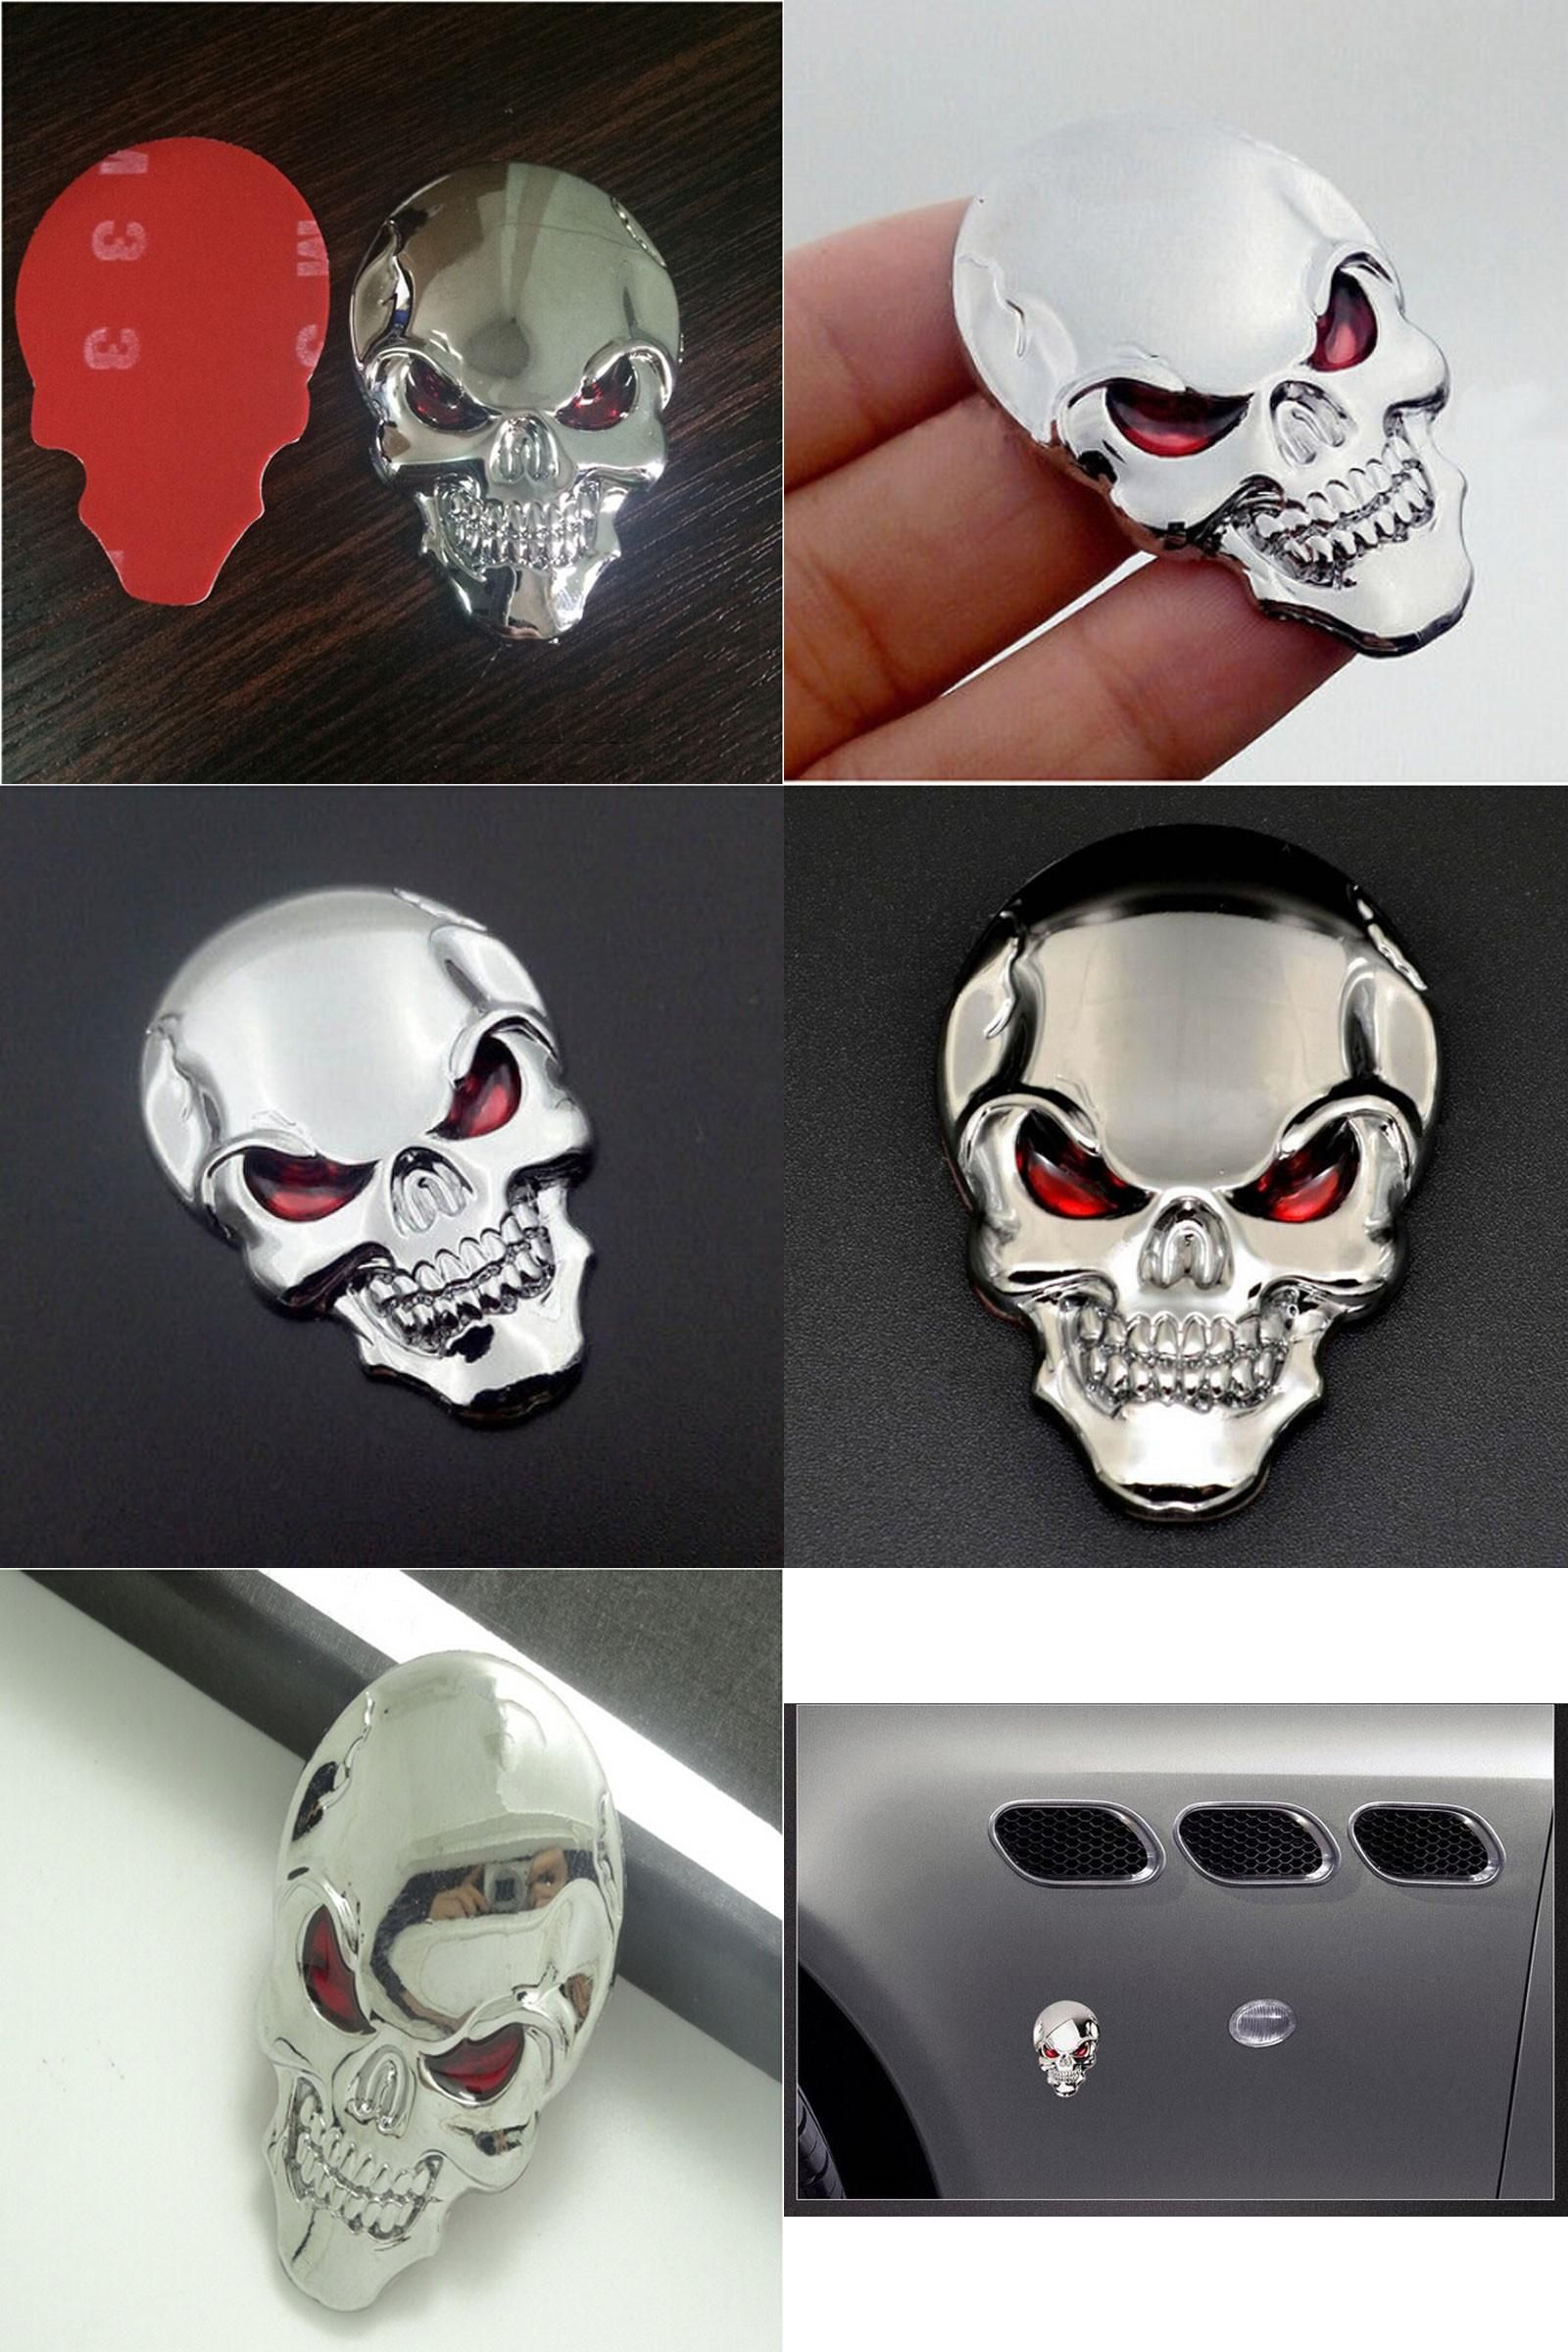 Visit To Buy Hot Sale Auto Car Motorcycle Skull Bone Sticker - Motorcycle helmet decals graphicsreflectivedecalscomour decal kit on the bmw systemhelmet